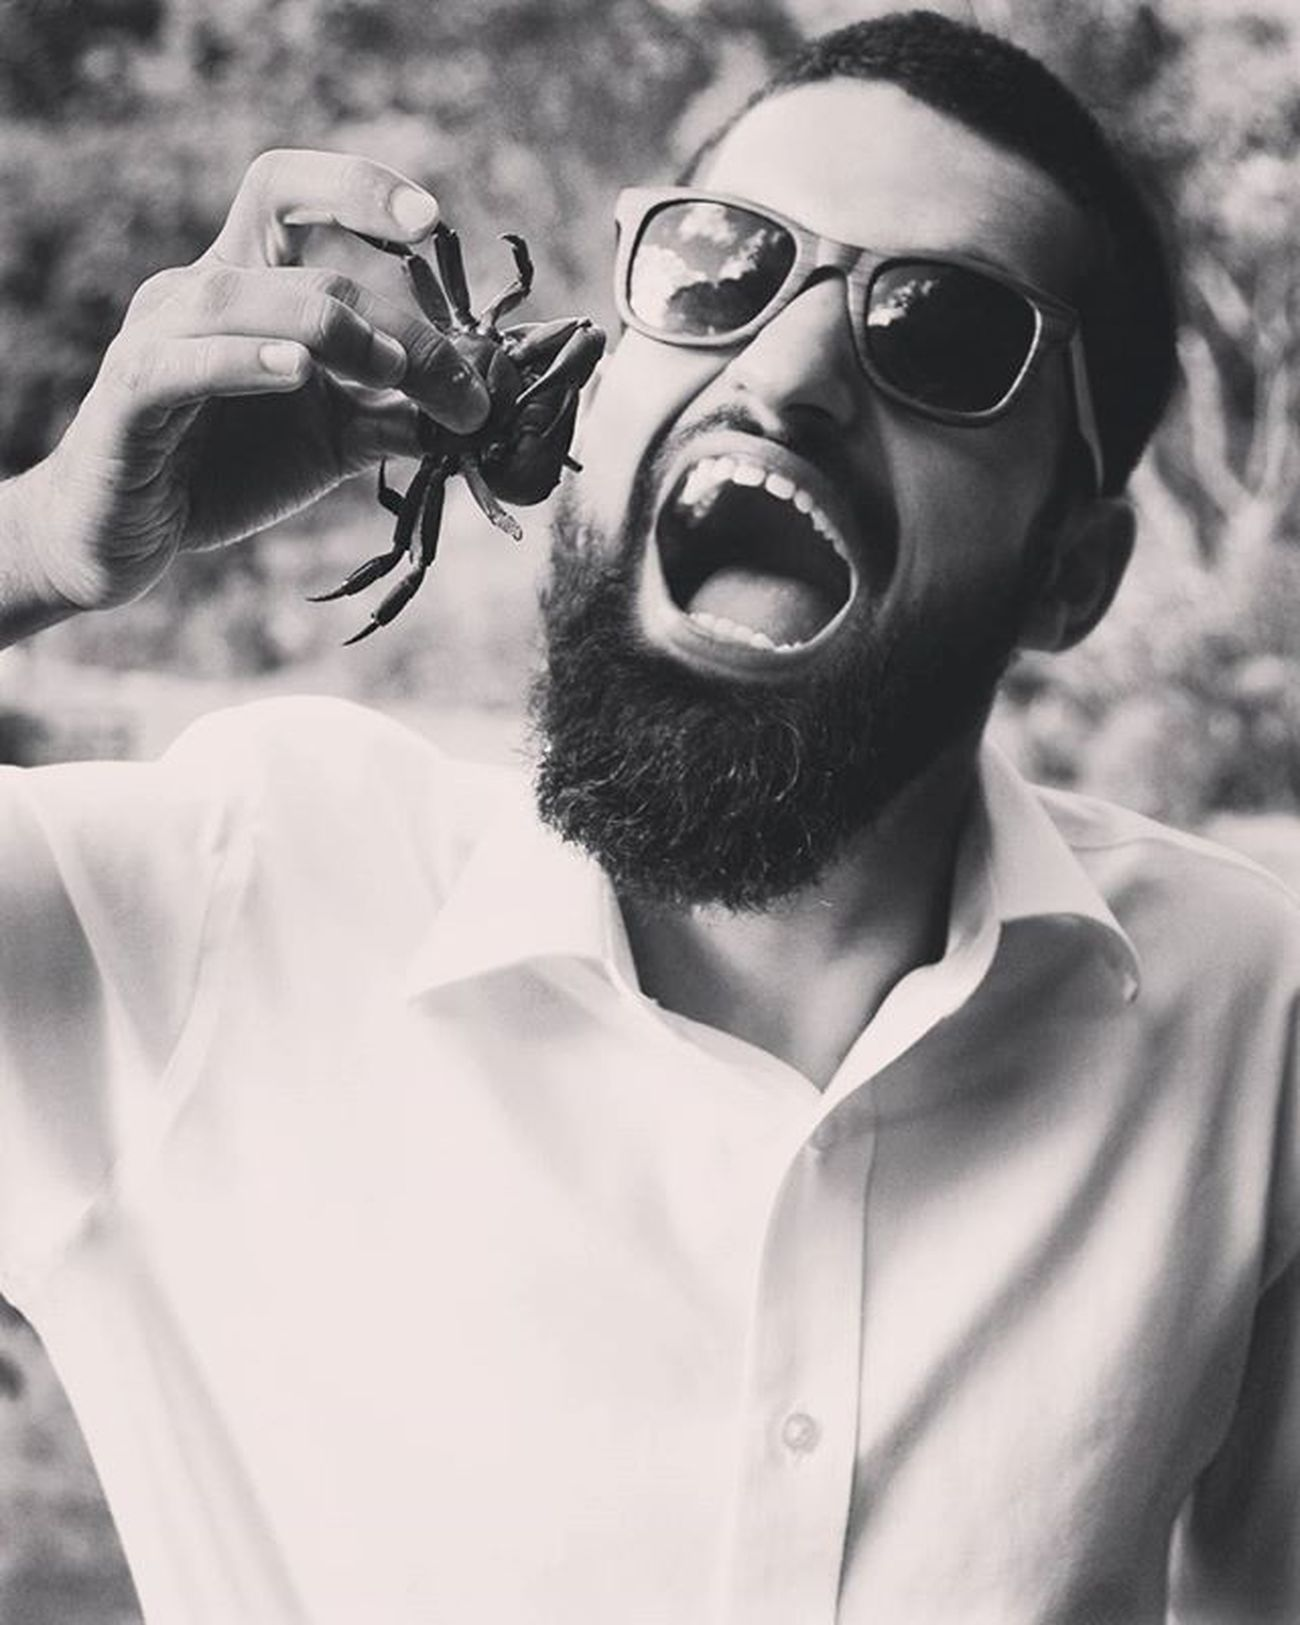 That time.. When my brother decided to eat a wild crab 👌😝 Whataposer Capetownadventures Brotherfun Instalove Instacaptured Blackandwhitephotography Blackandwhiteportrait Crabfest Daring